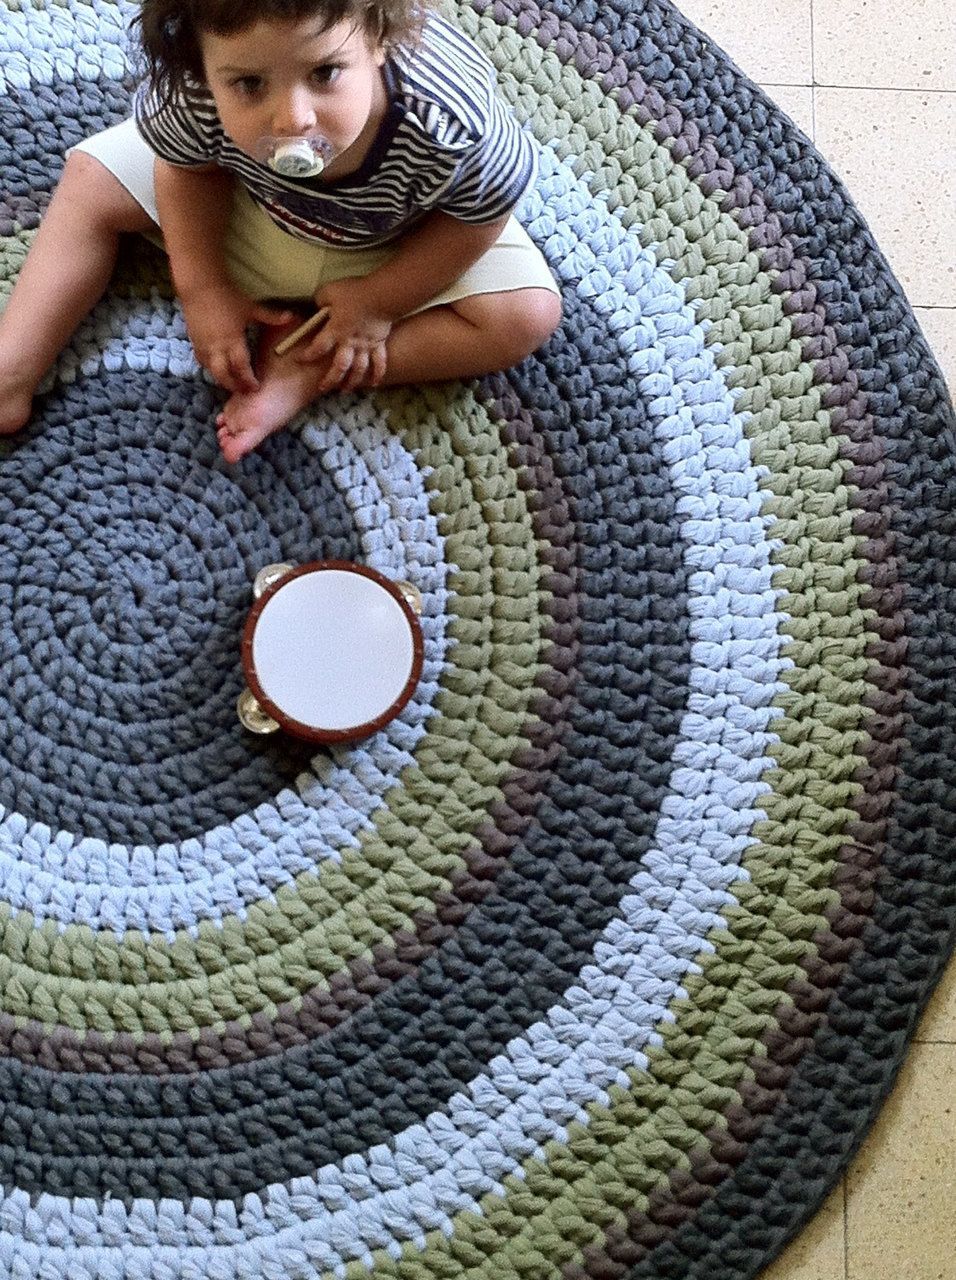 Crochet Rug Round Colorful